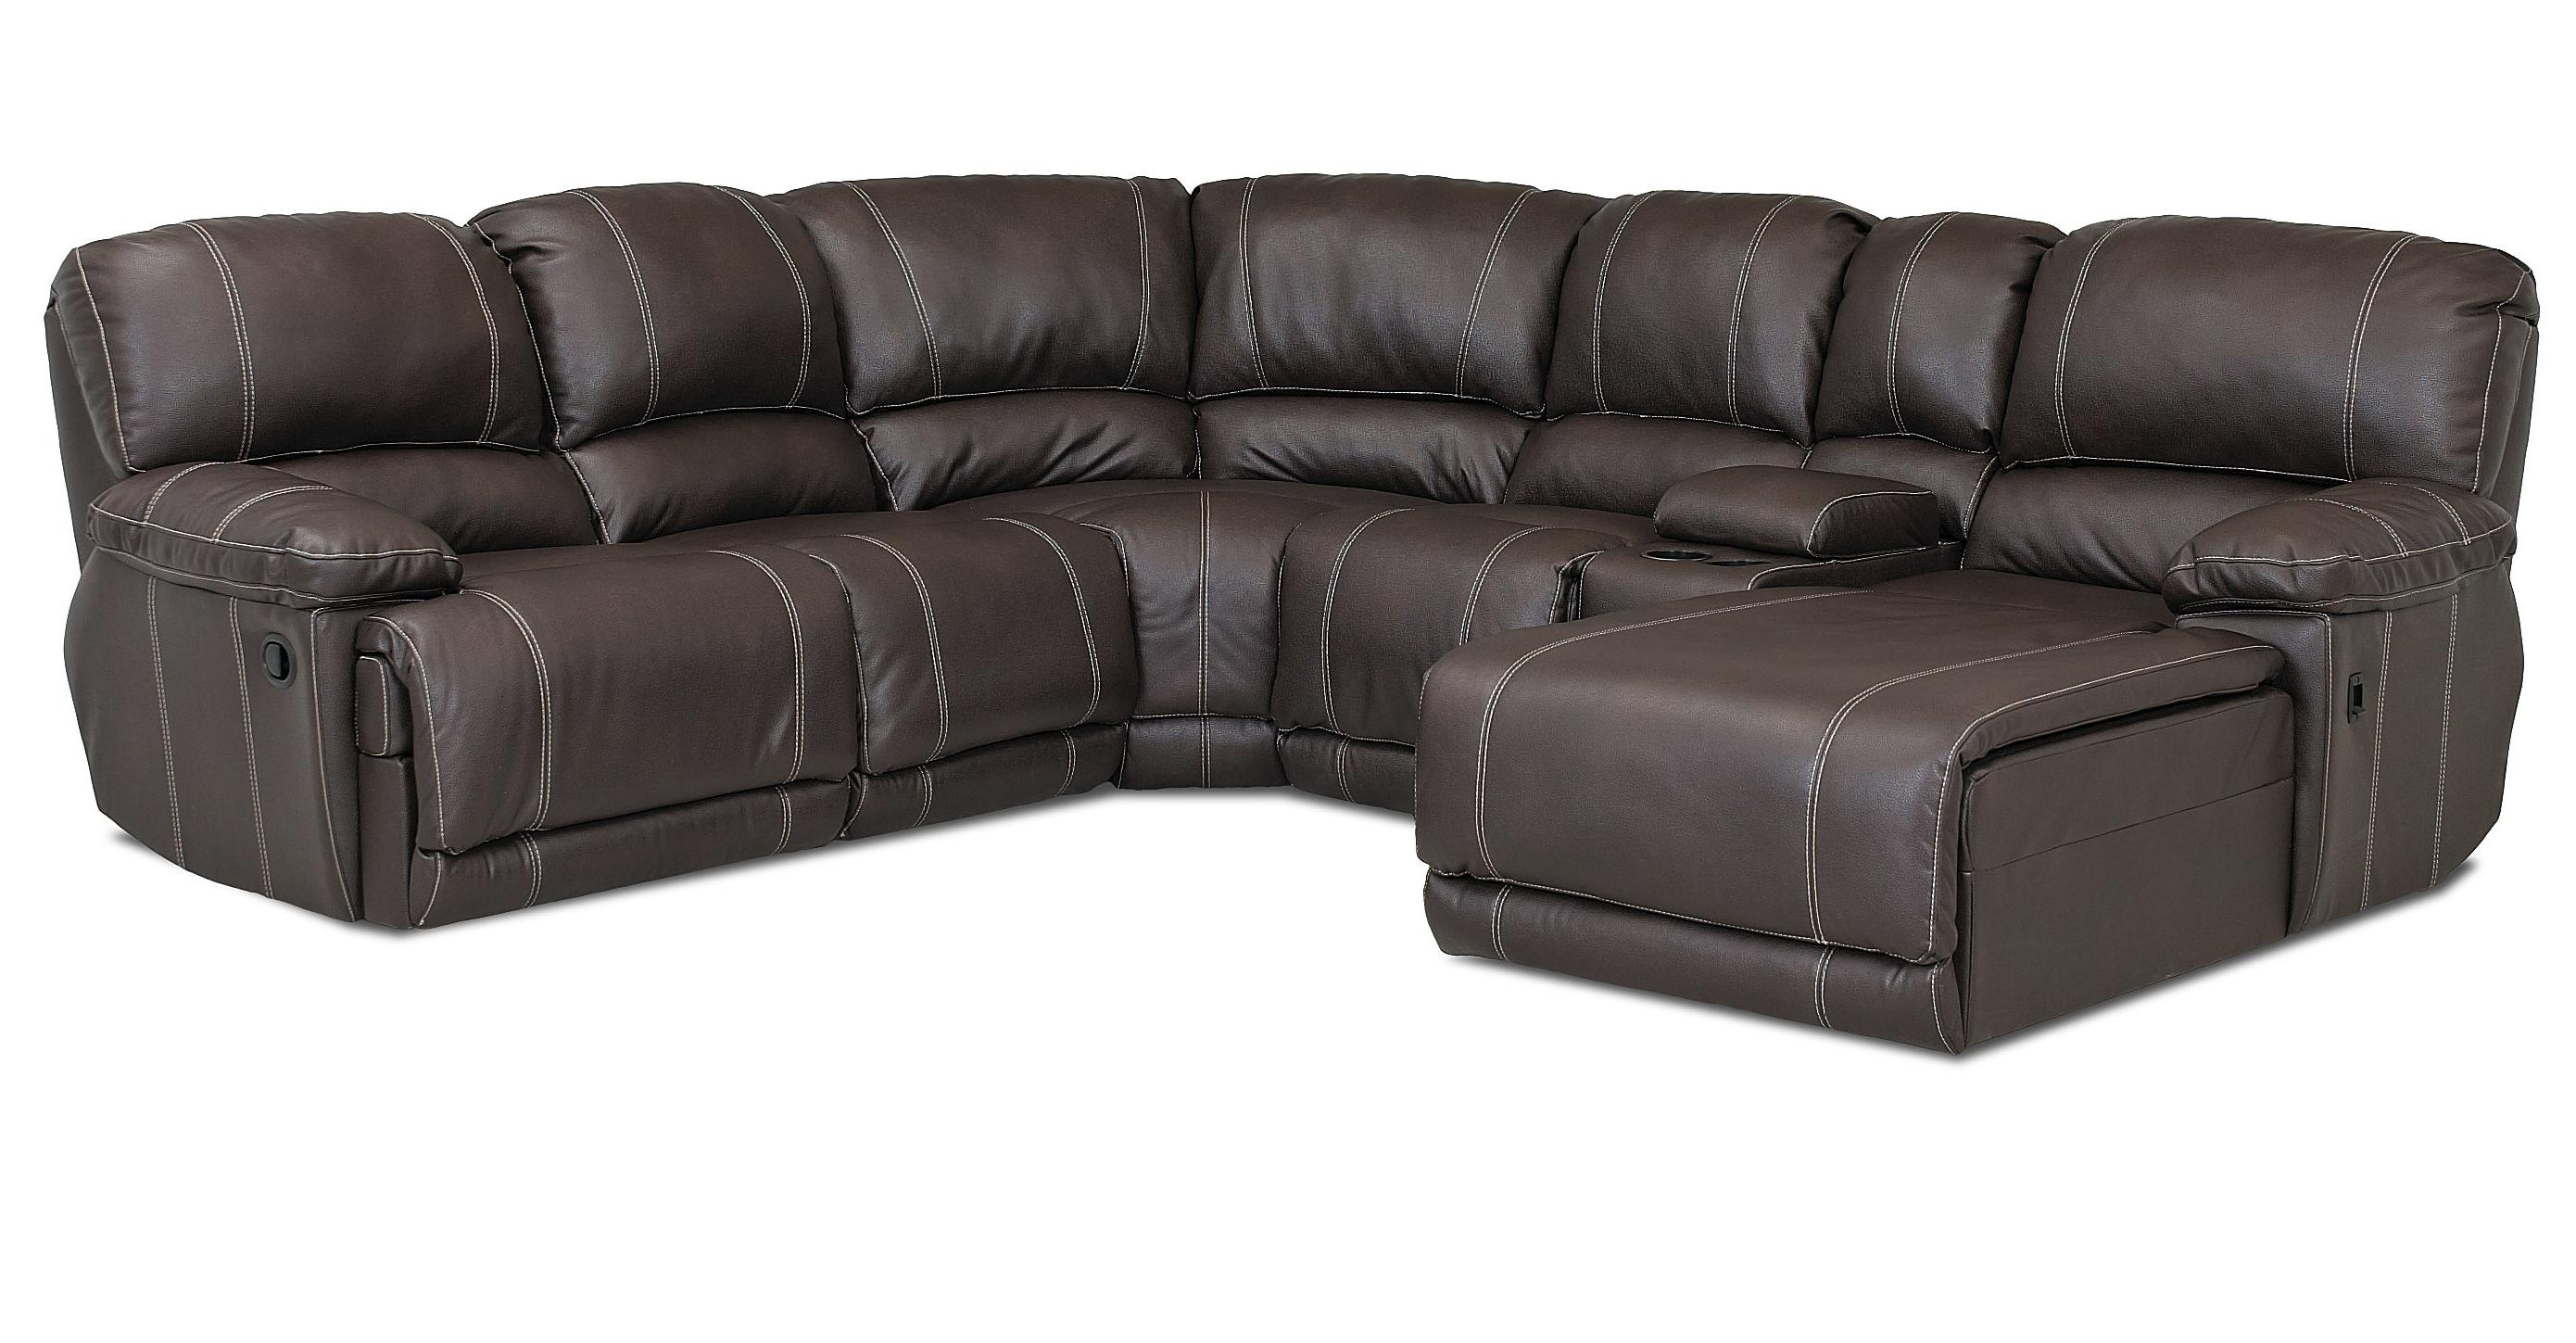 Klaussner Derek Casual Reclining Sectional Sofa With Chaise – Ahfa In Norfolk Chocolate 6 Piece Sectionals (Image 12 of 25)